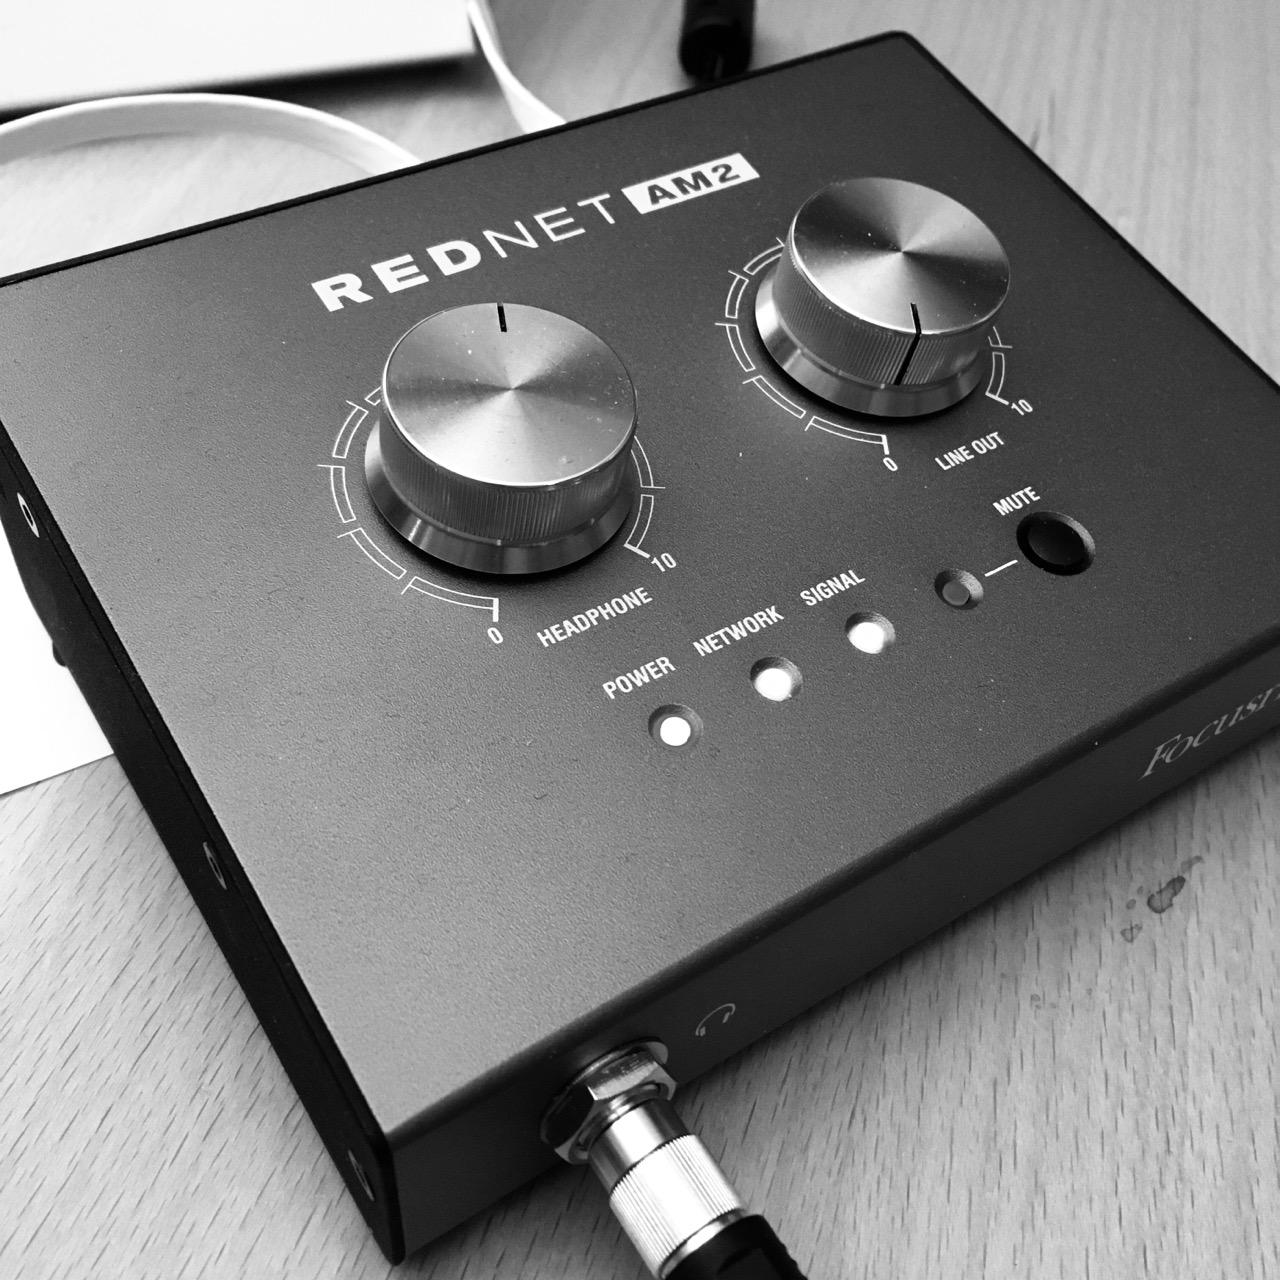 Focusrite RedNet AM2 audio interface